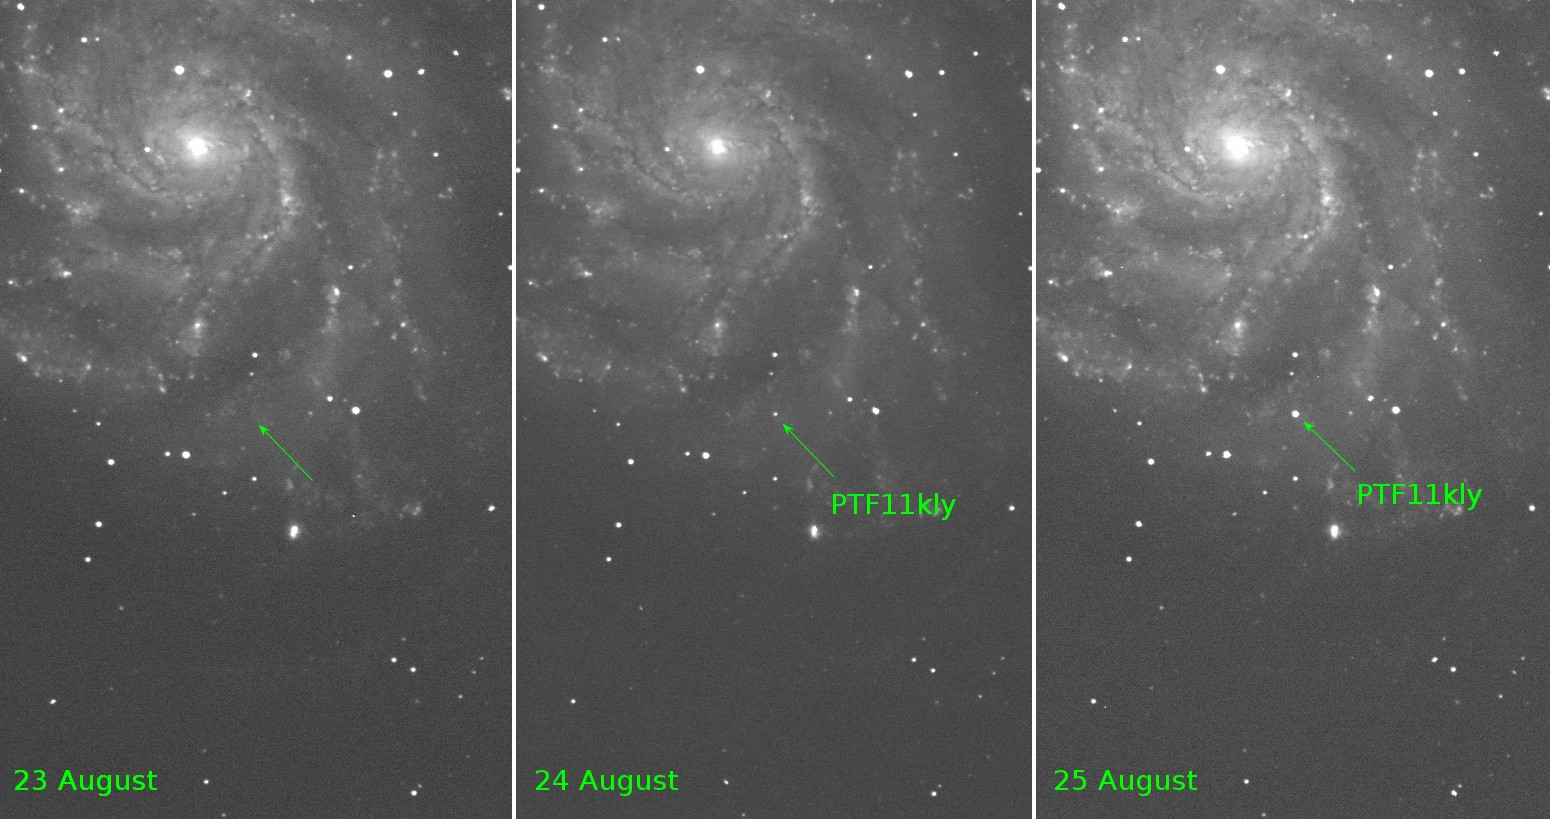 Discovery image of supernova PTF11kly (Peter Nugent/PTF collaboration)